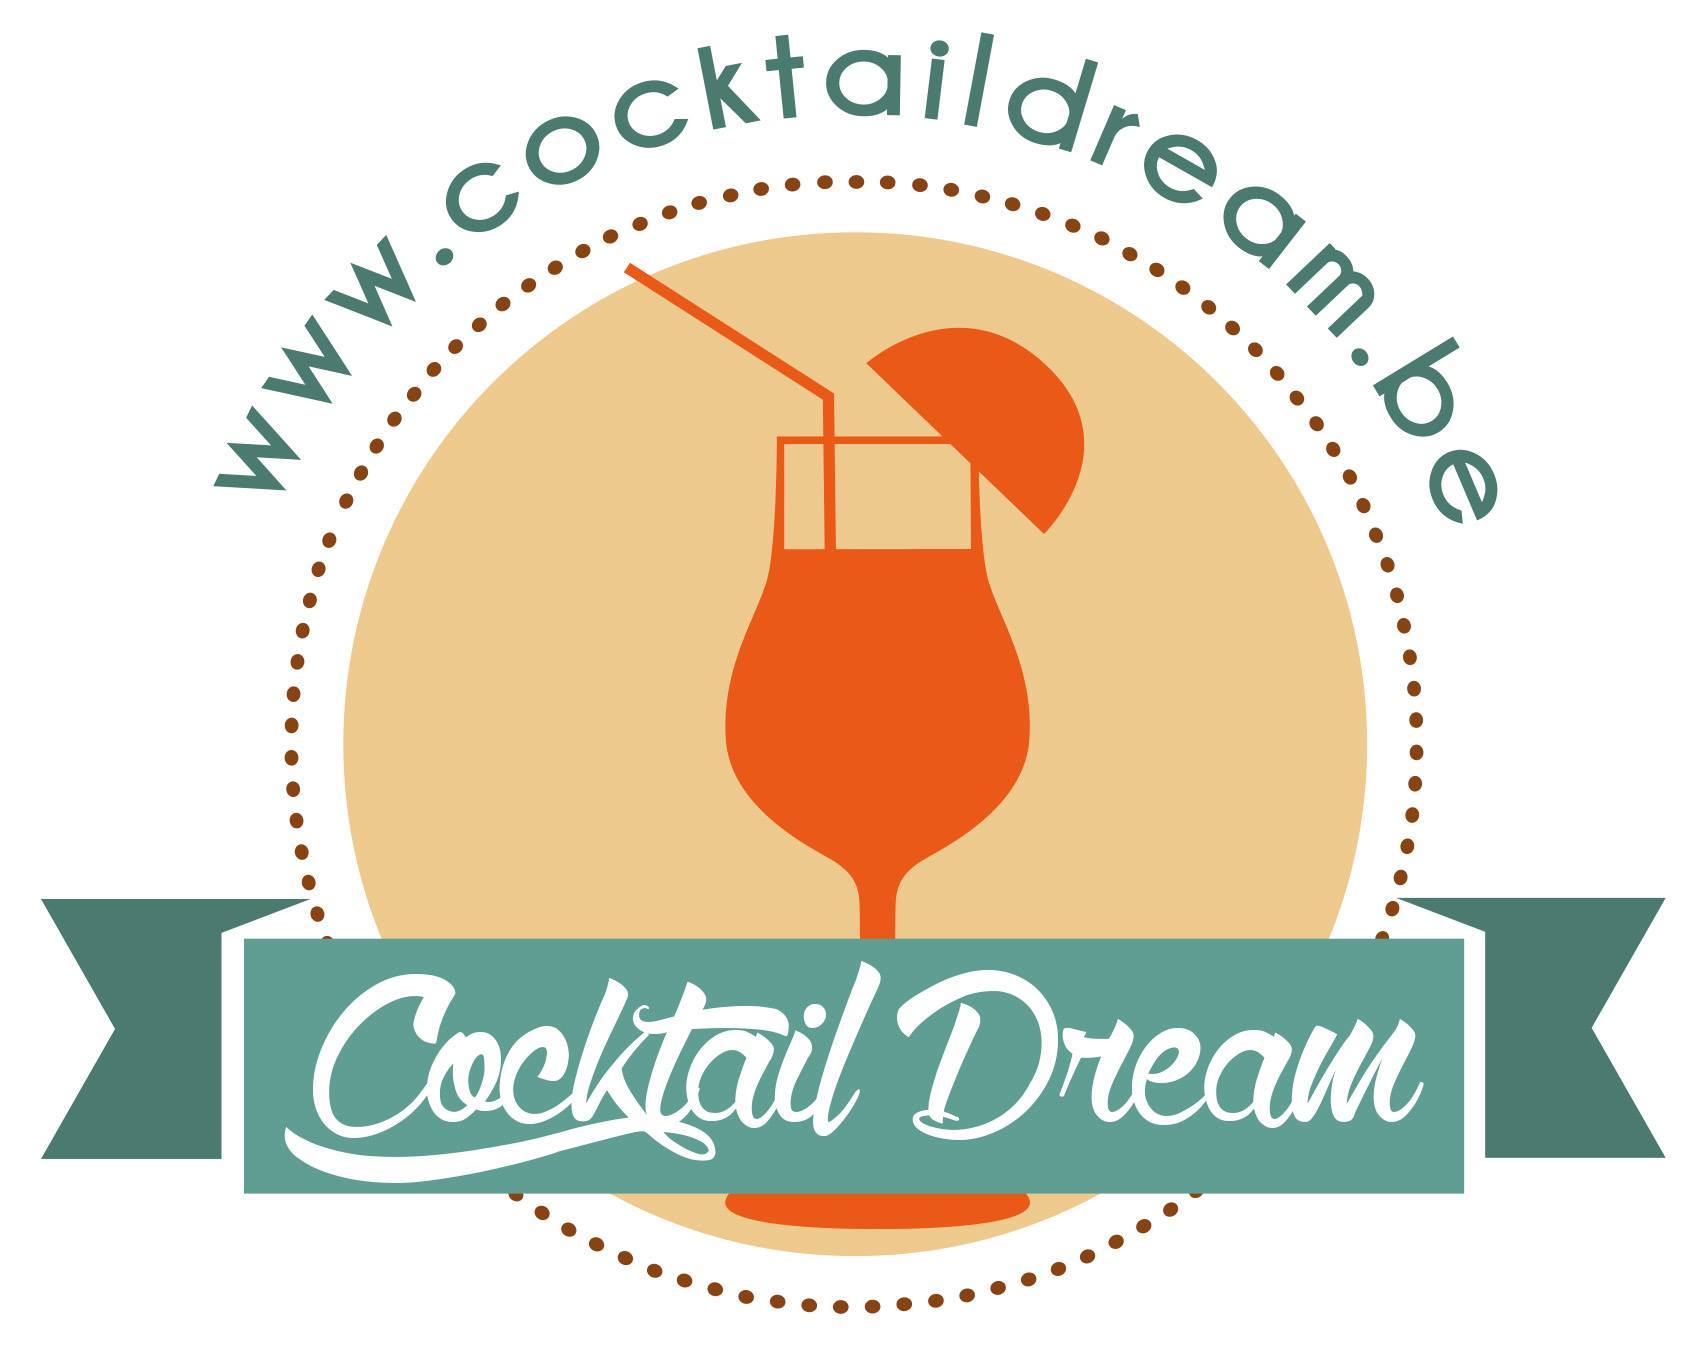 Cocktail dream